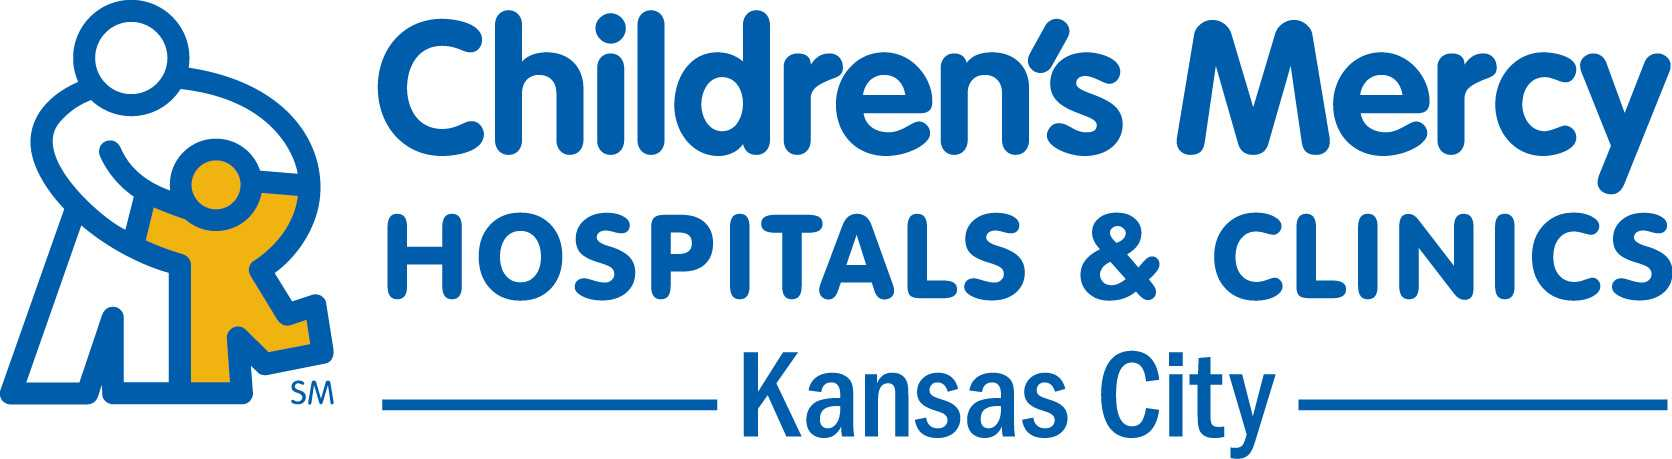 Children's Mercy Hospitals and Clinics